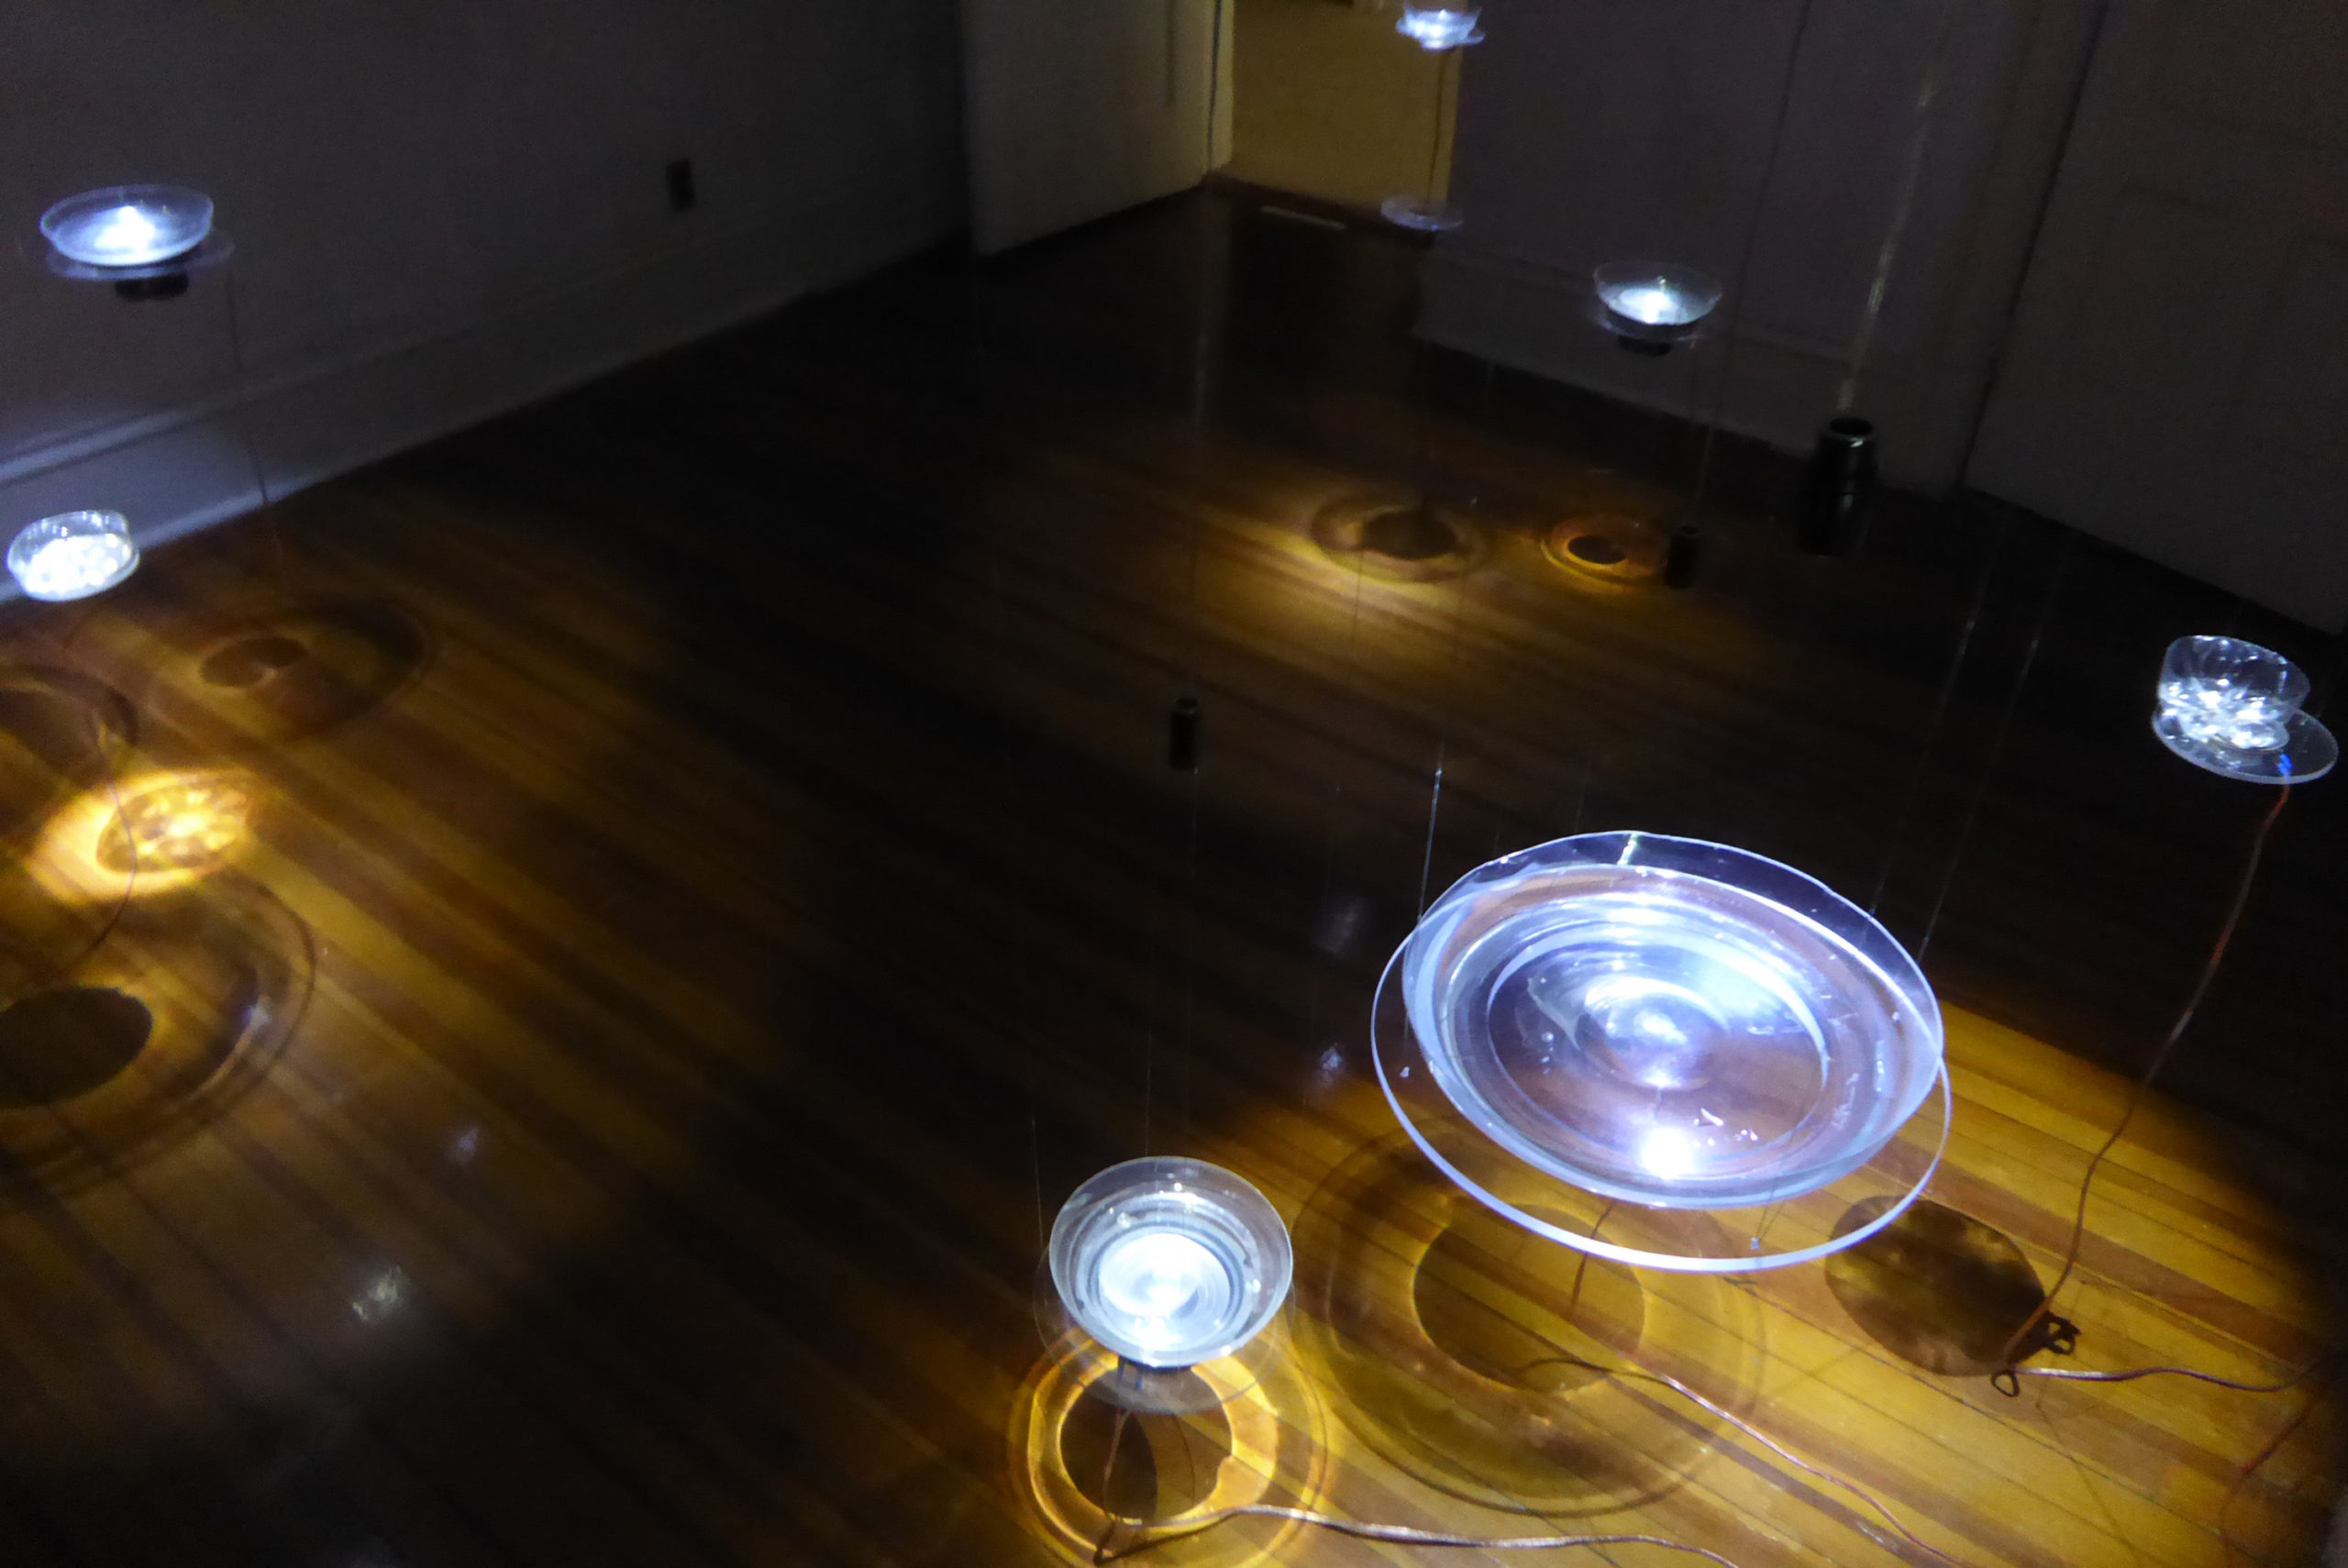 Lorraine Beaulieu Lifestream installation in Artist Photonics at the HoloCenter on Governors Island